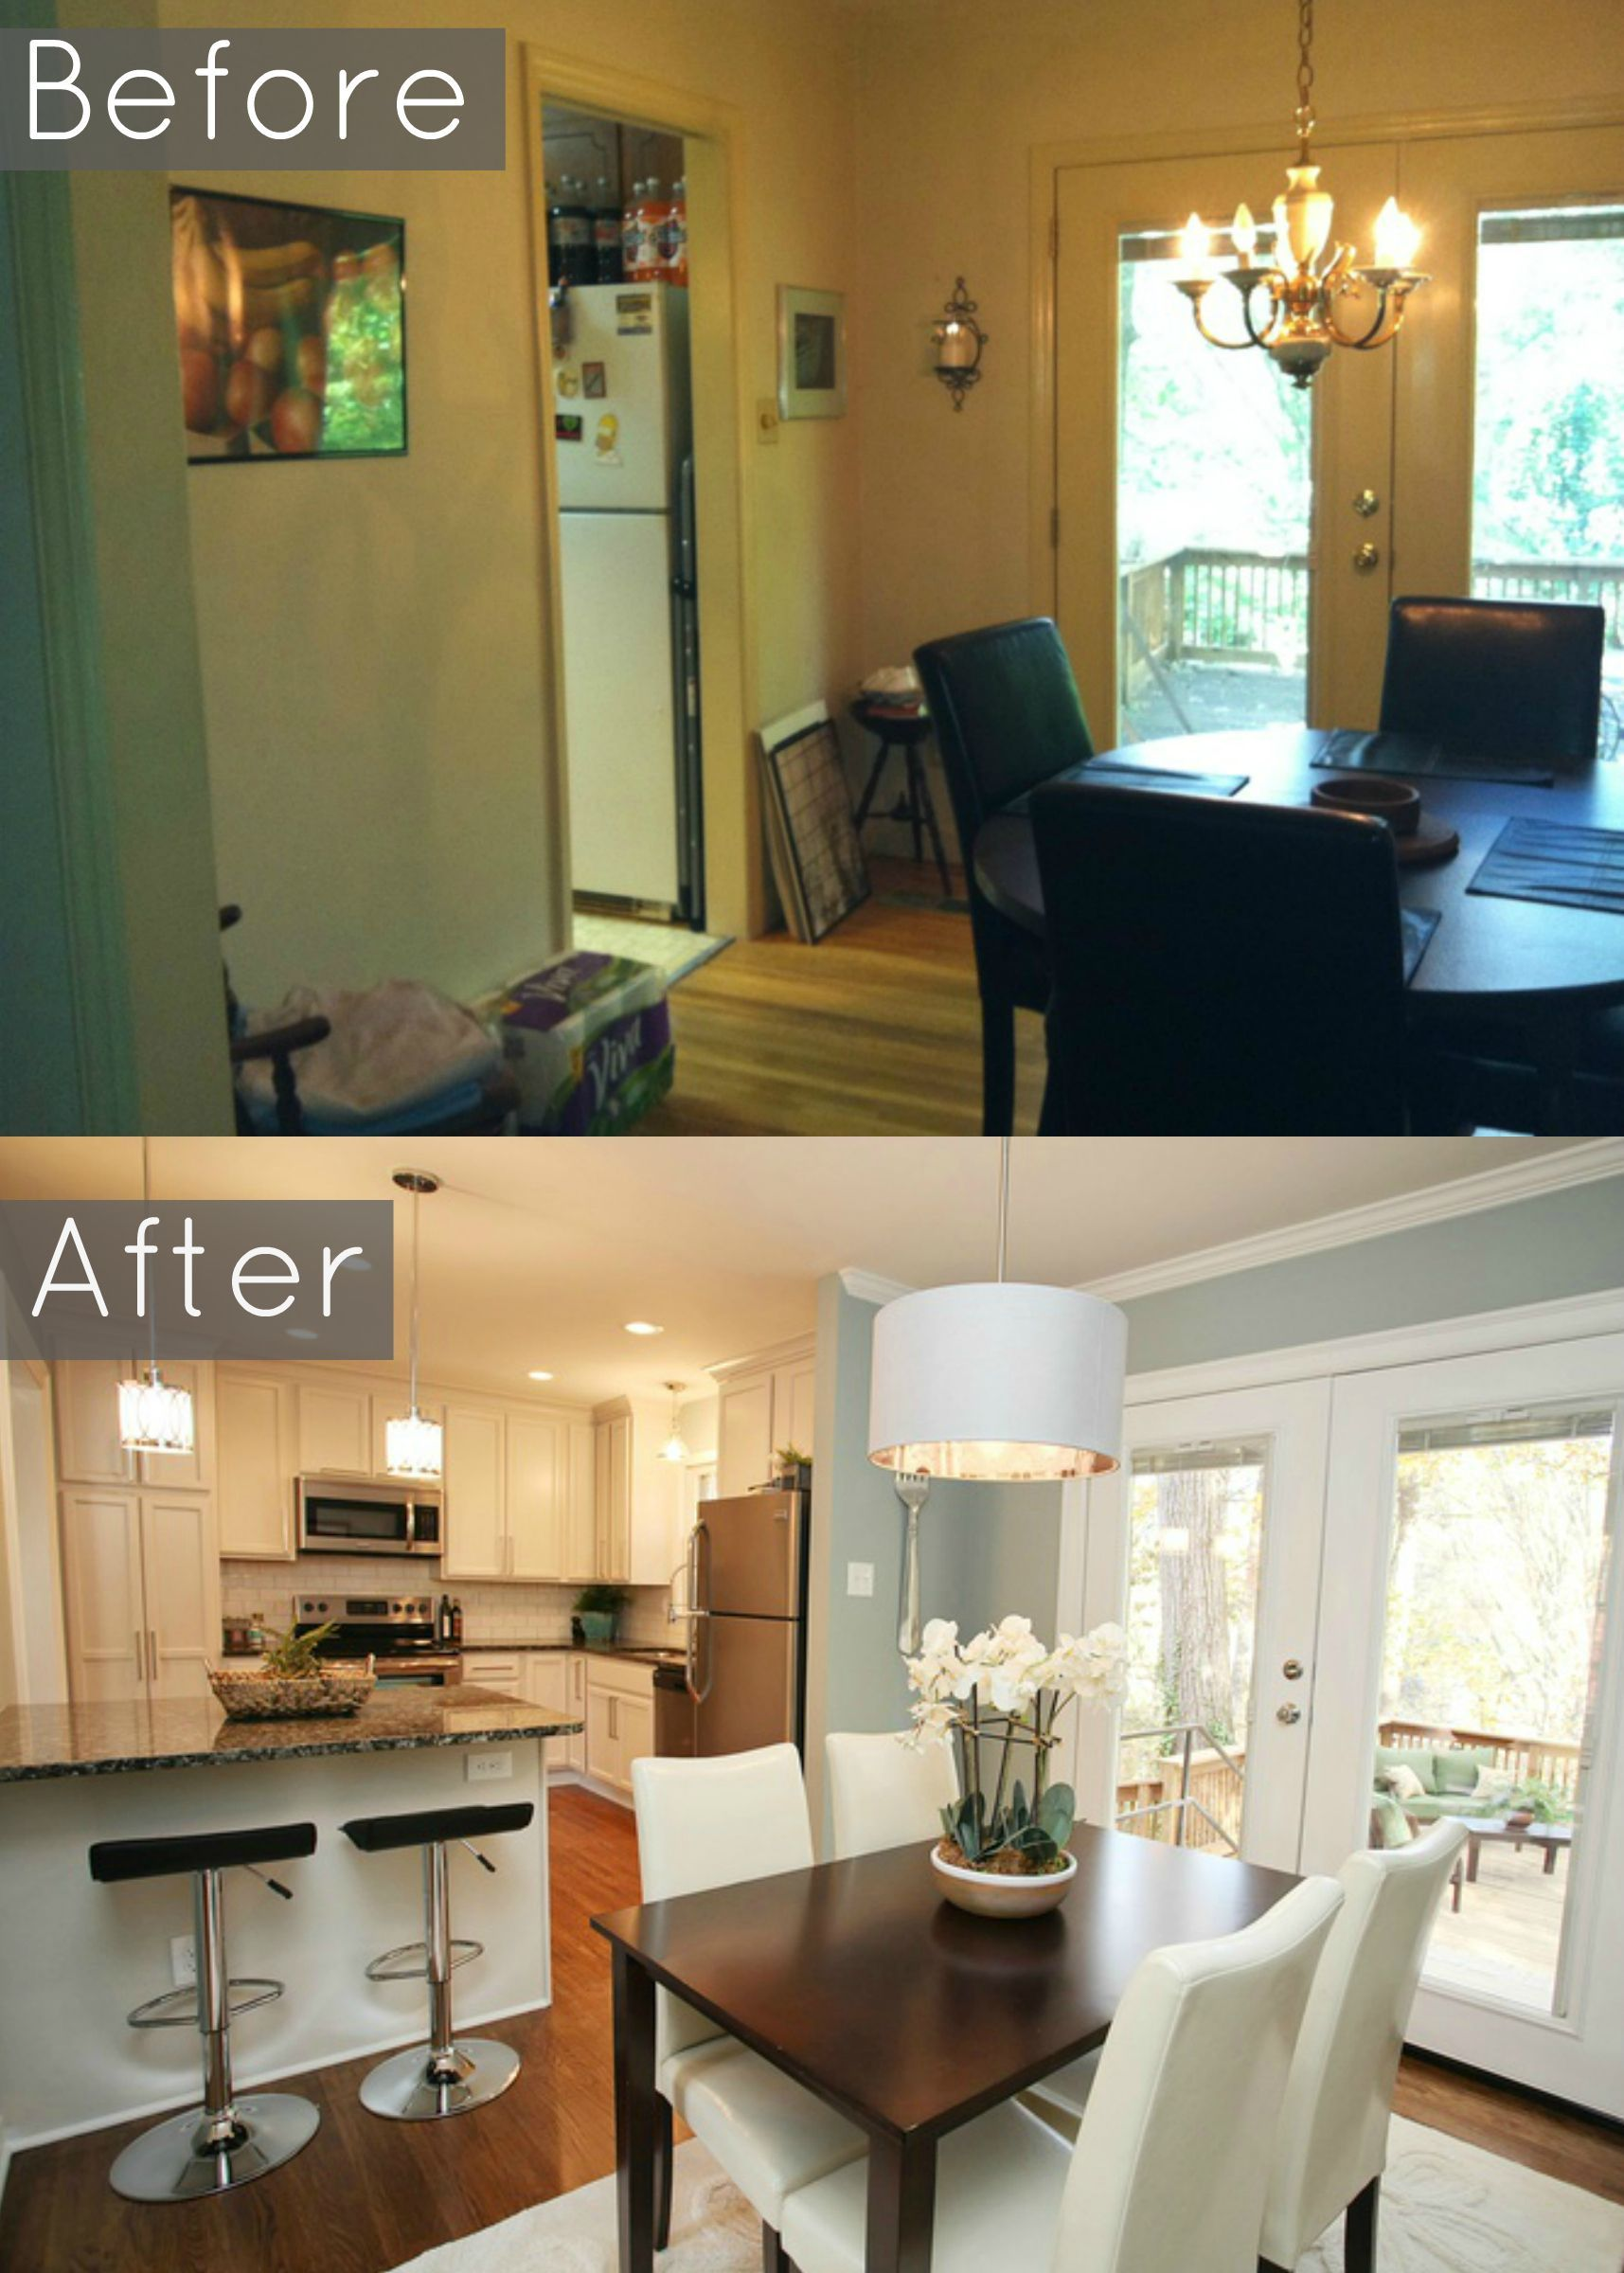 15+ Hottest Kitchen Remodel Before and After On A Budget ...